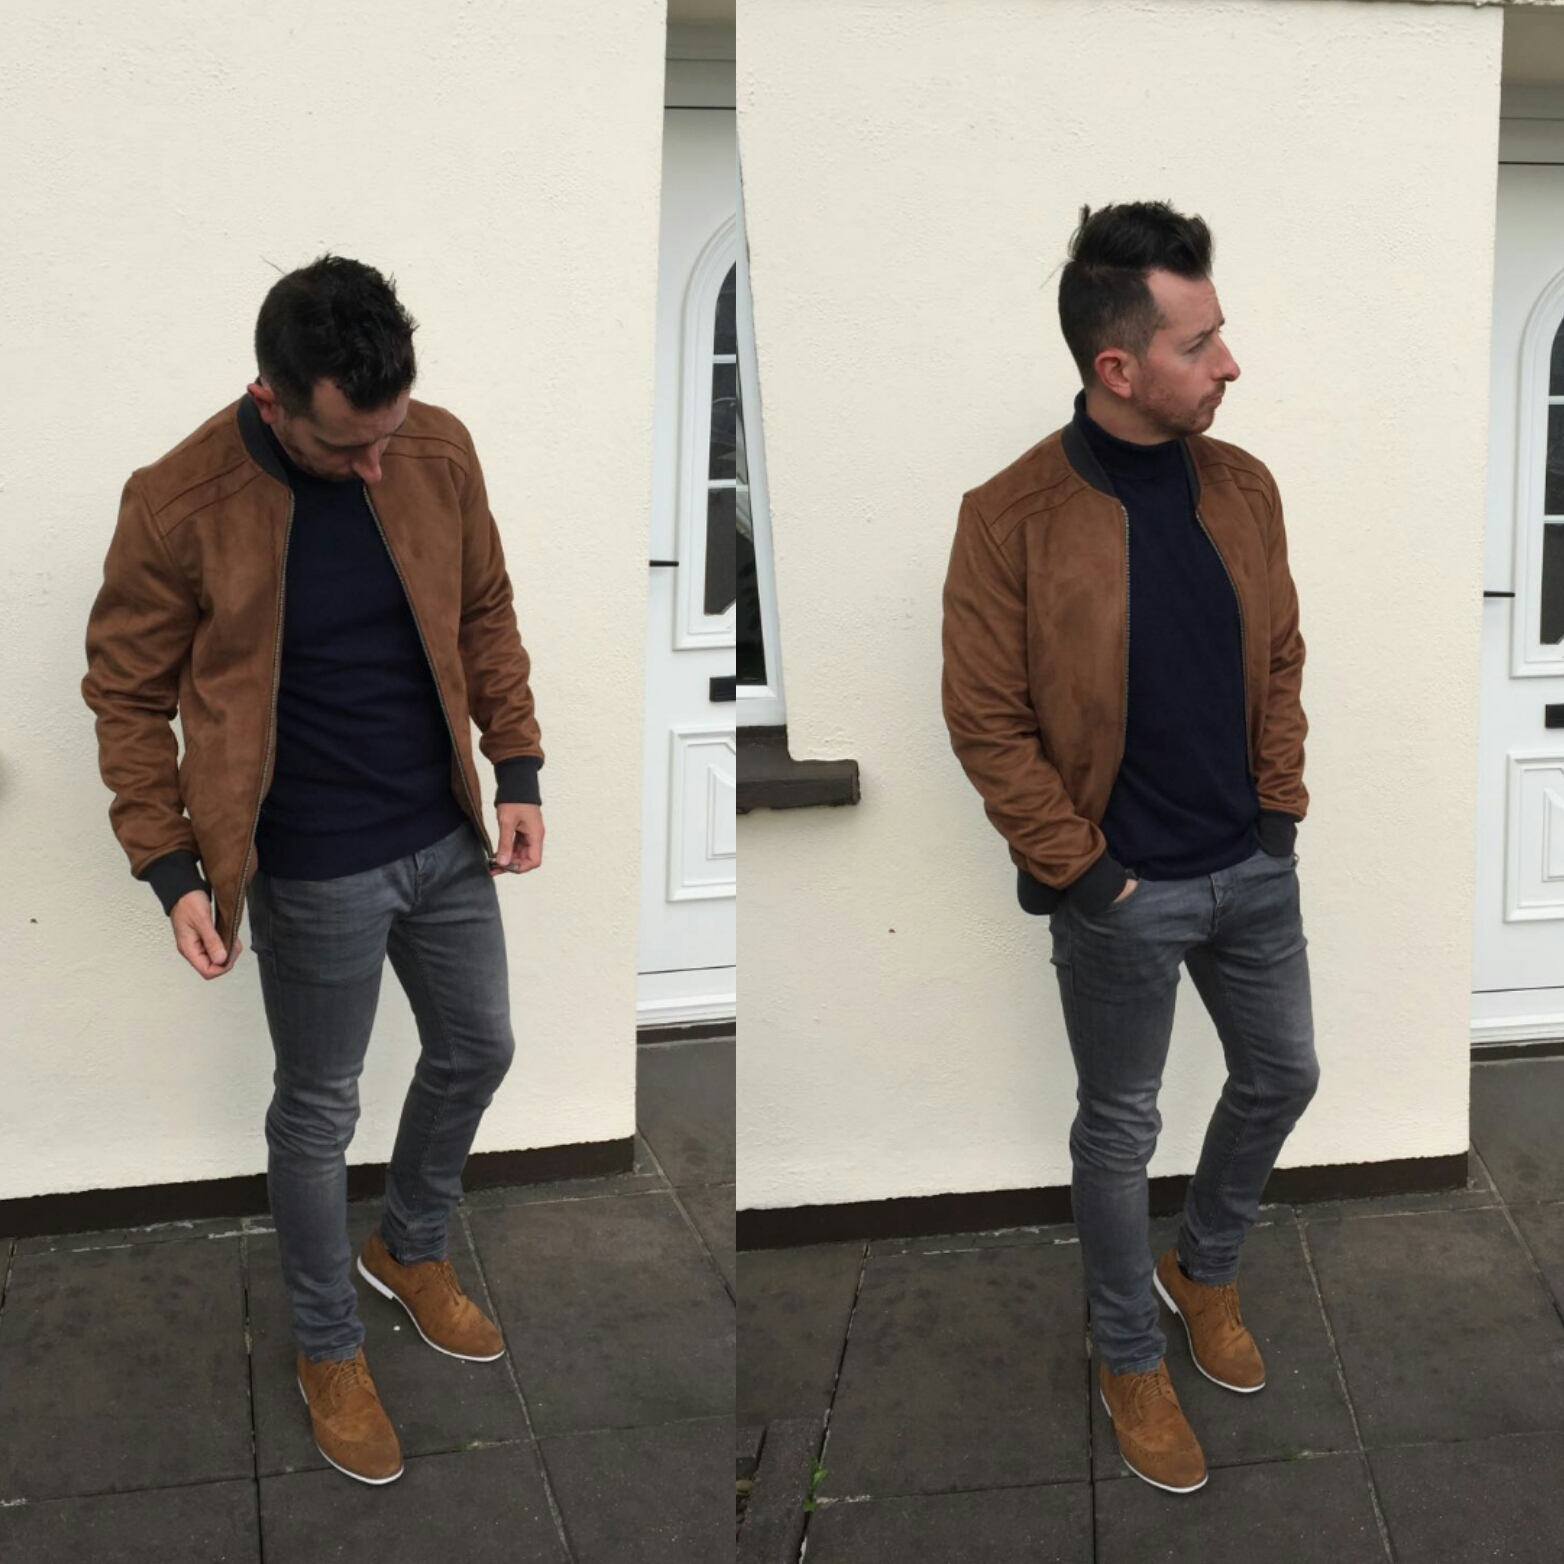 082d69782434 The point of fashion is to look good! The Roll Neck looks great with the  Tan Bomber! The grey jeans provide a great contrast. Prefect outfit for a  Autumn ...